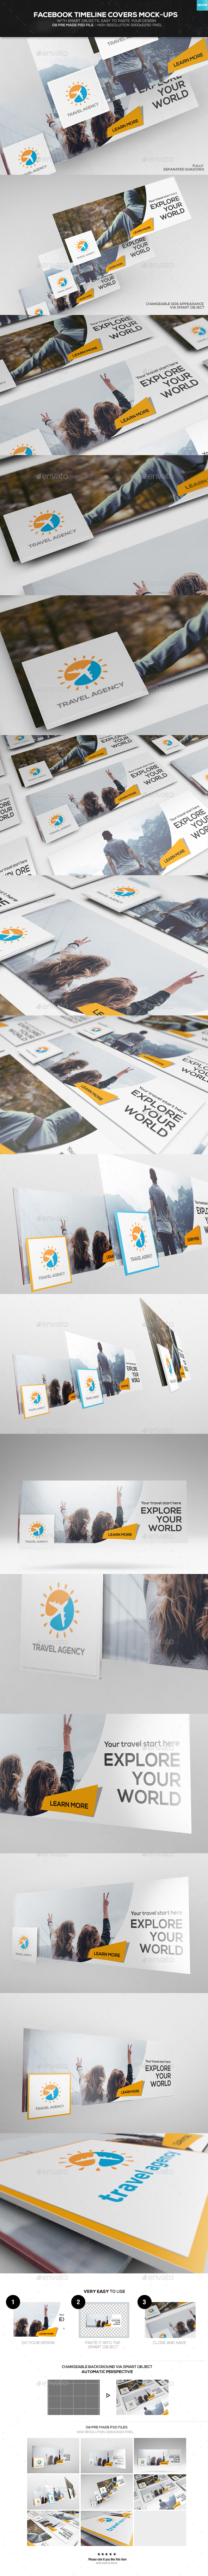 Facebook Timeline Covers Mock-up - Miscellaneous Displays